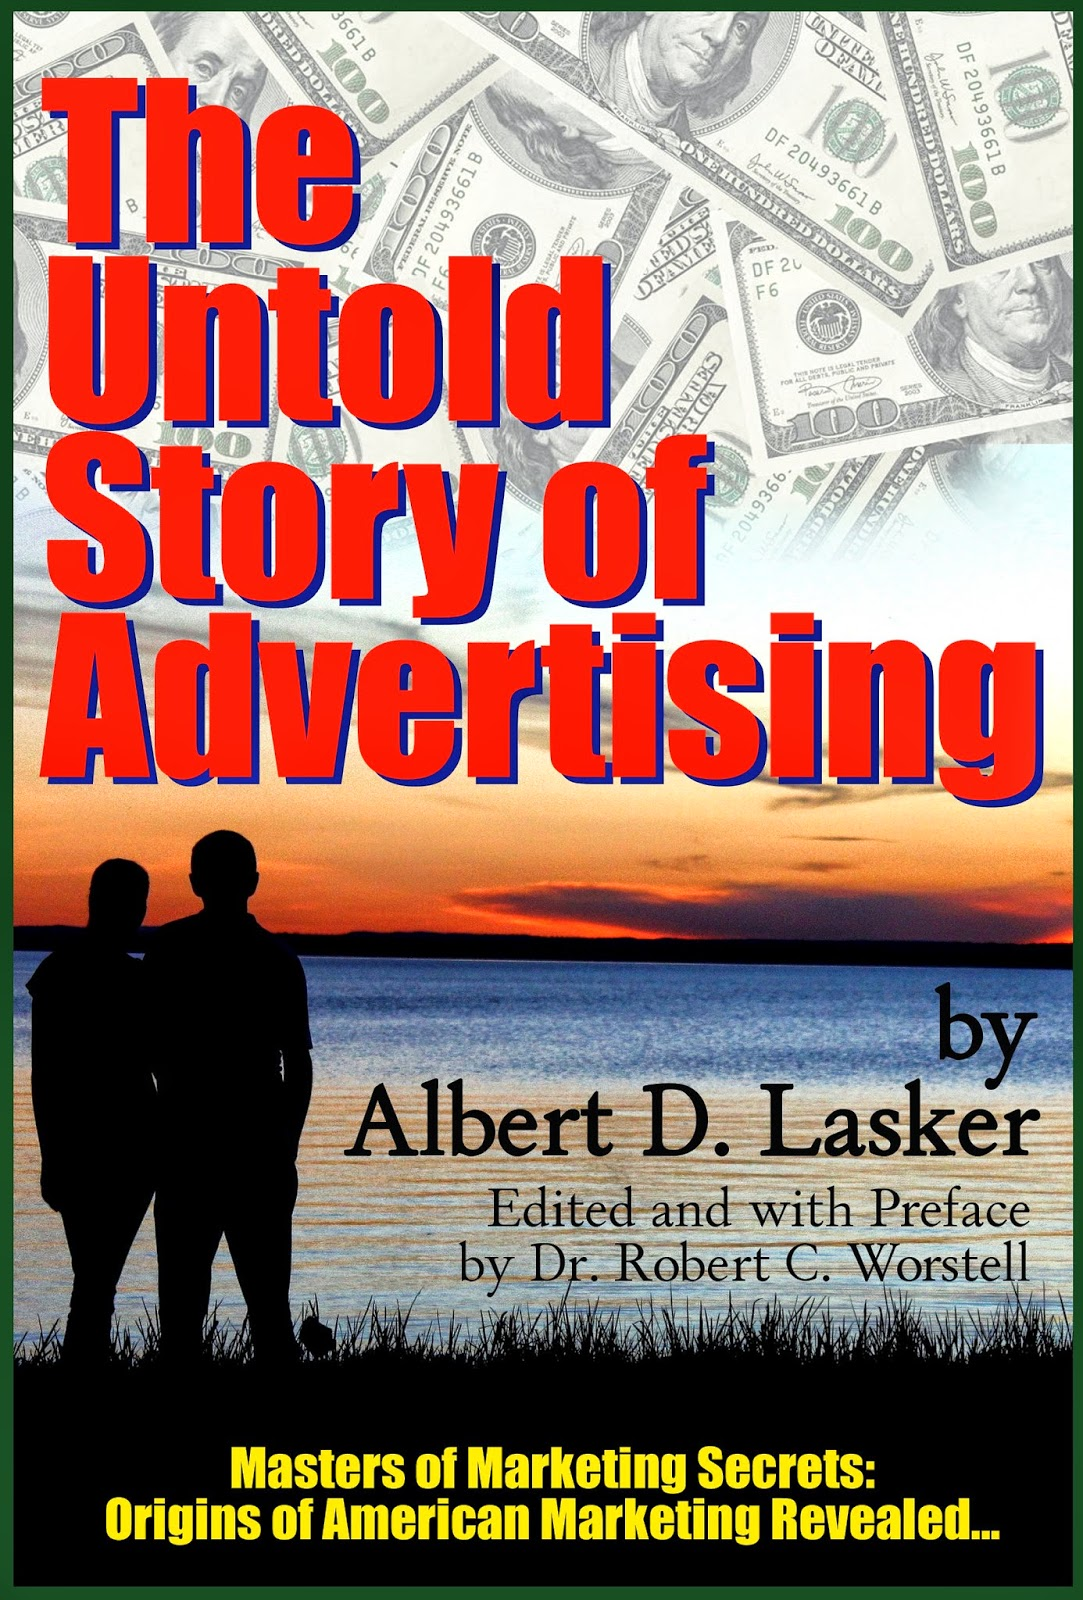 Albert D. Lasker - The Untold Story of Advertising (The Lasker Story)